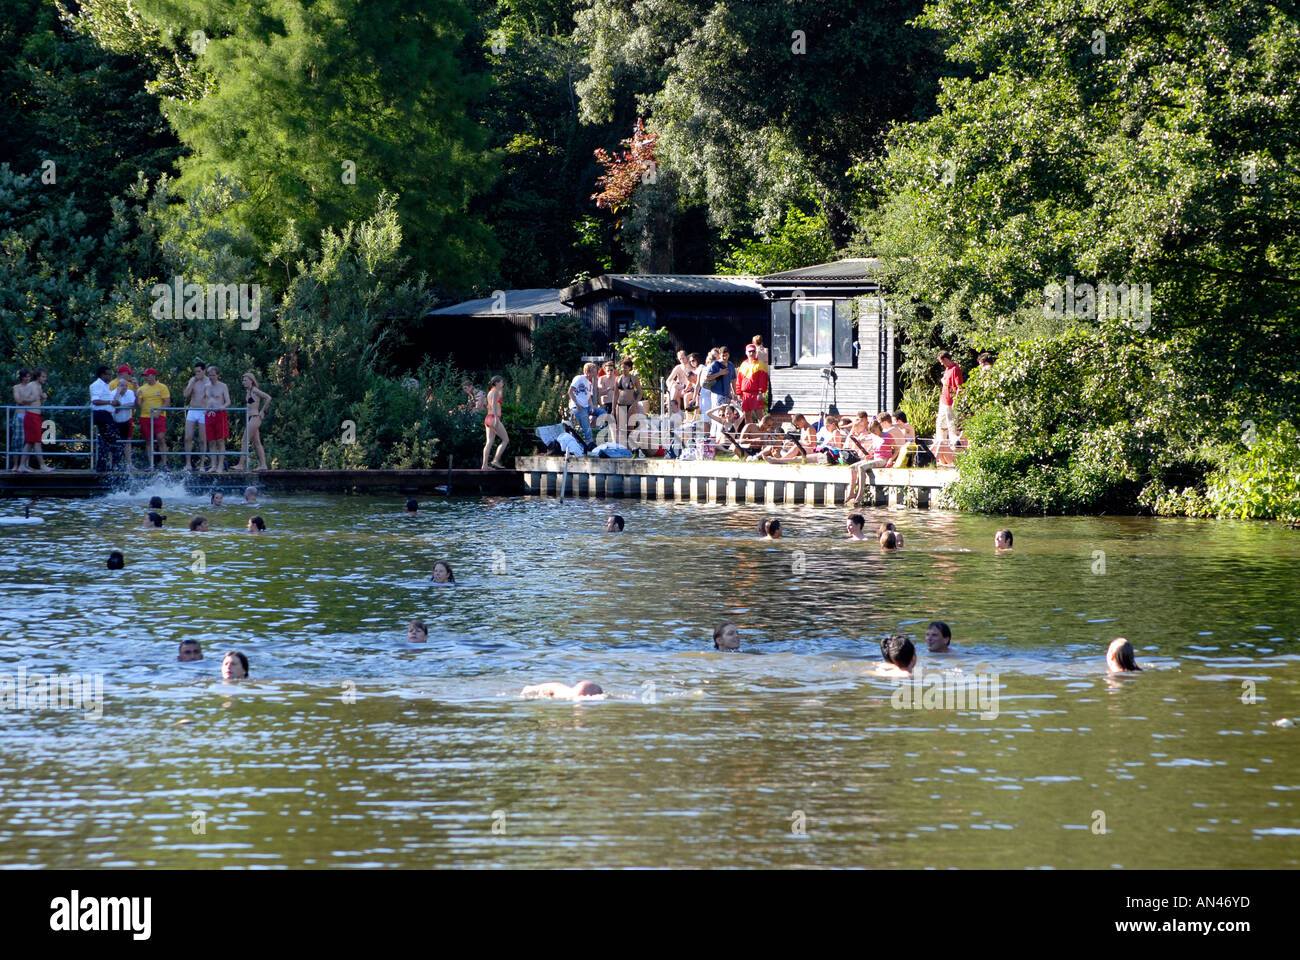 Swimmers at the mixed bathing pond on hampstead heath london stock photo 8803644 alamy for Hampstead heath park swimming pool